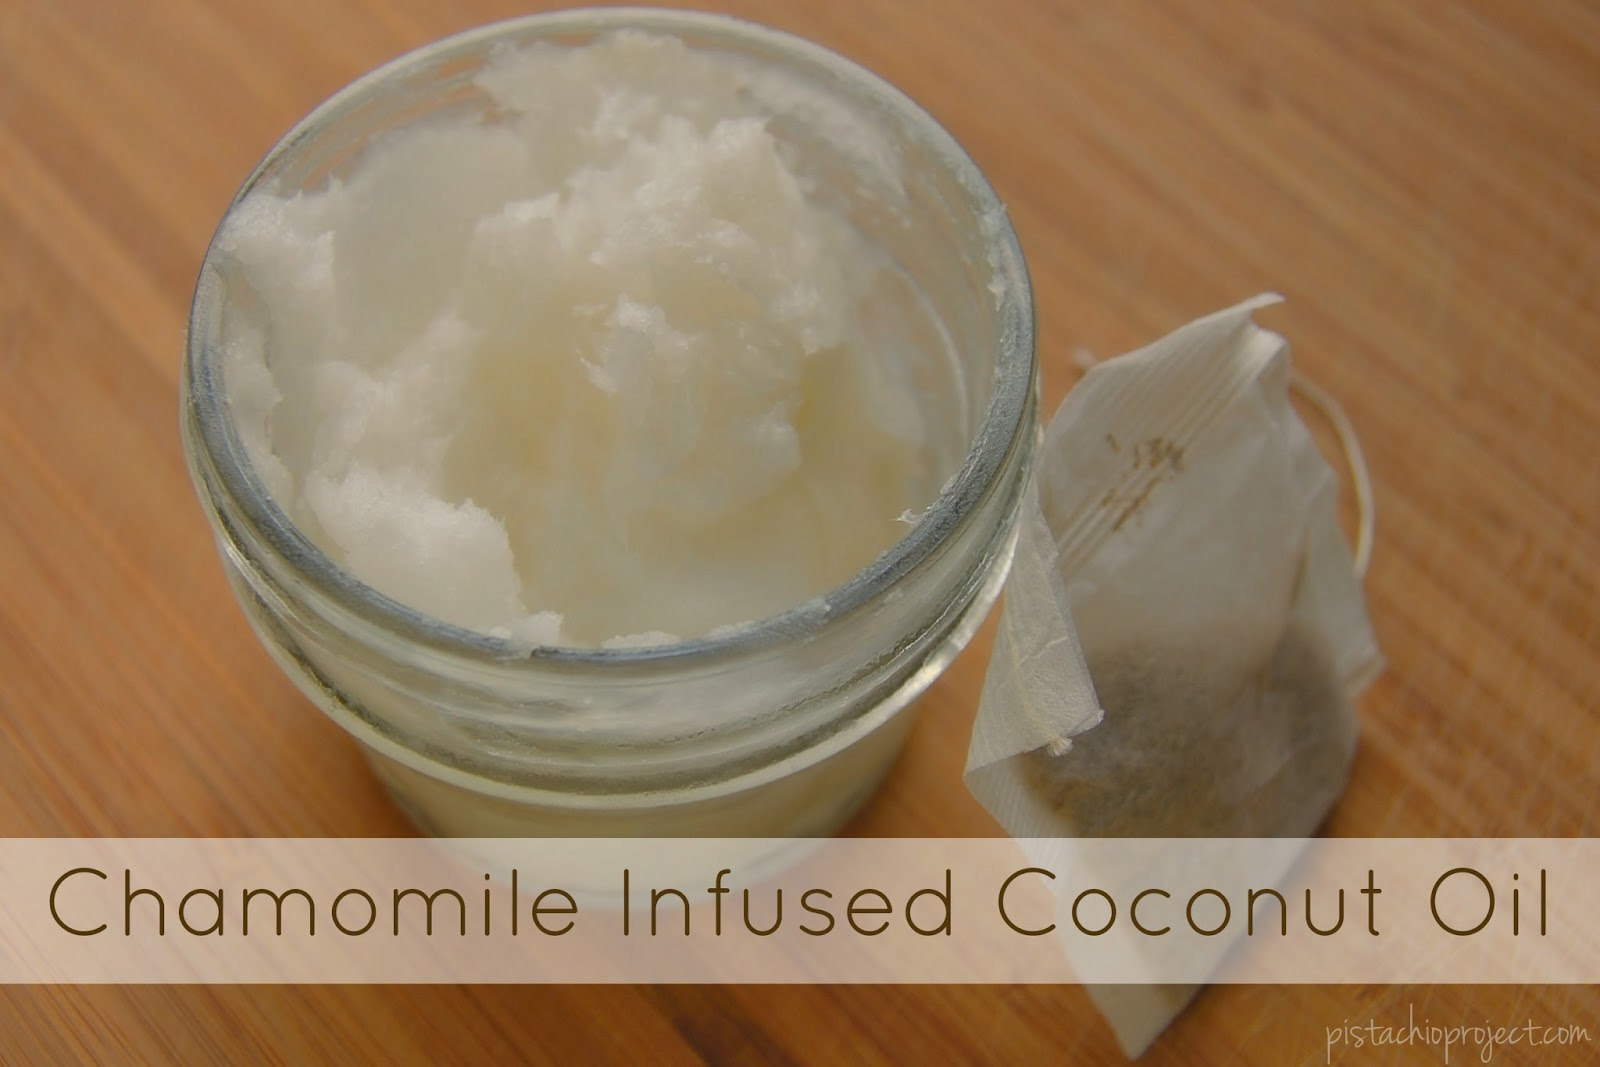 Chamomile Infused Coconut Oil